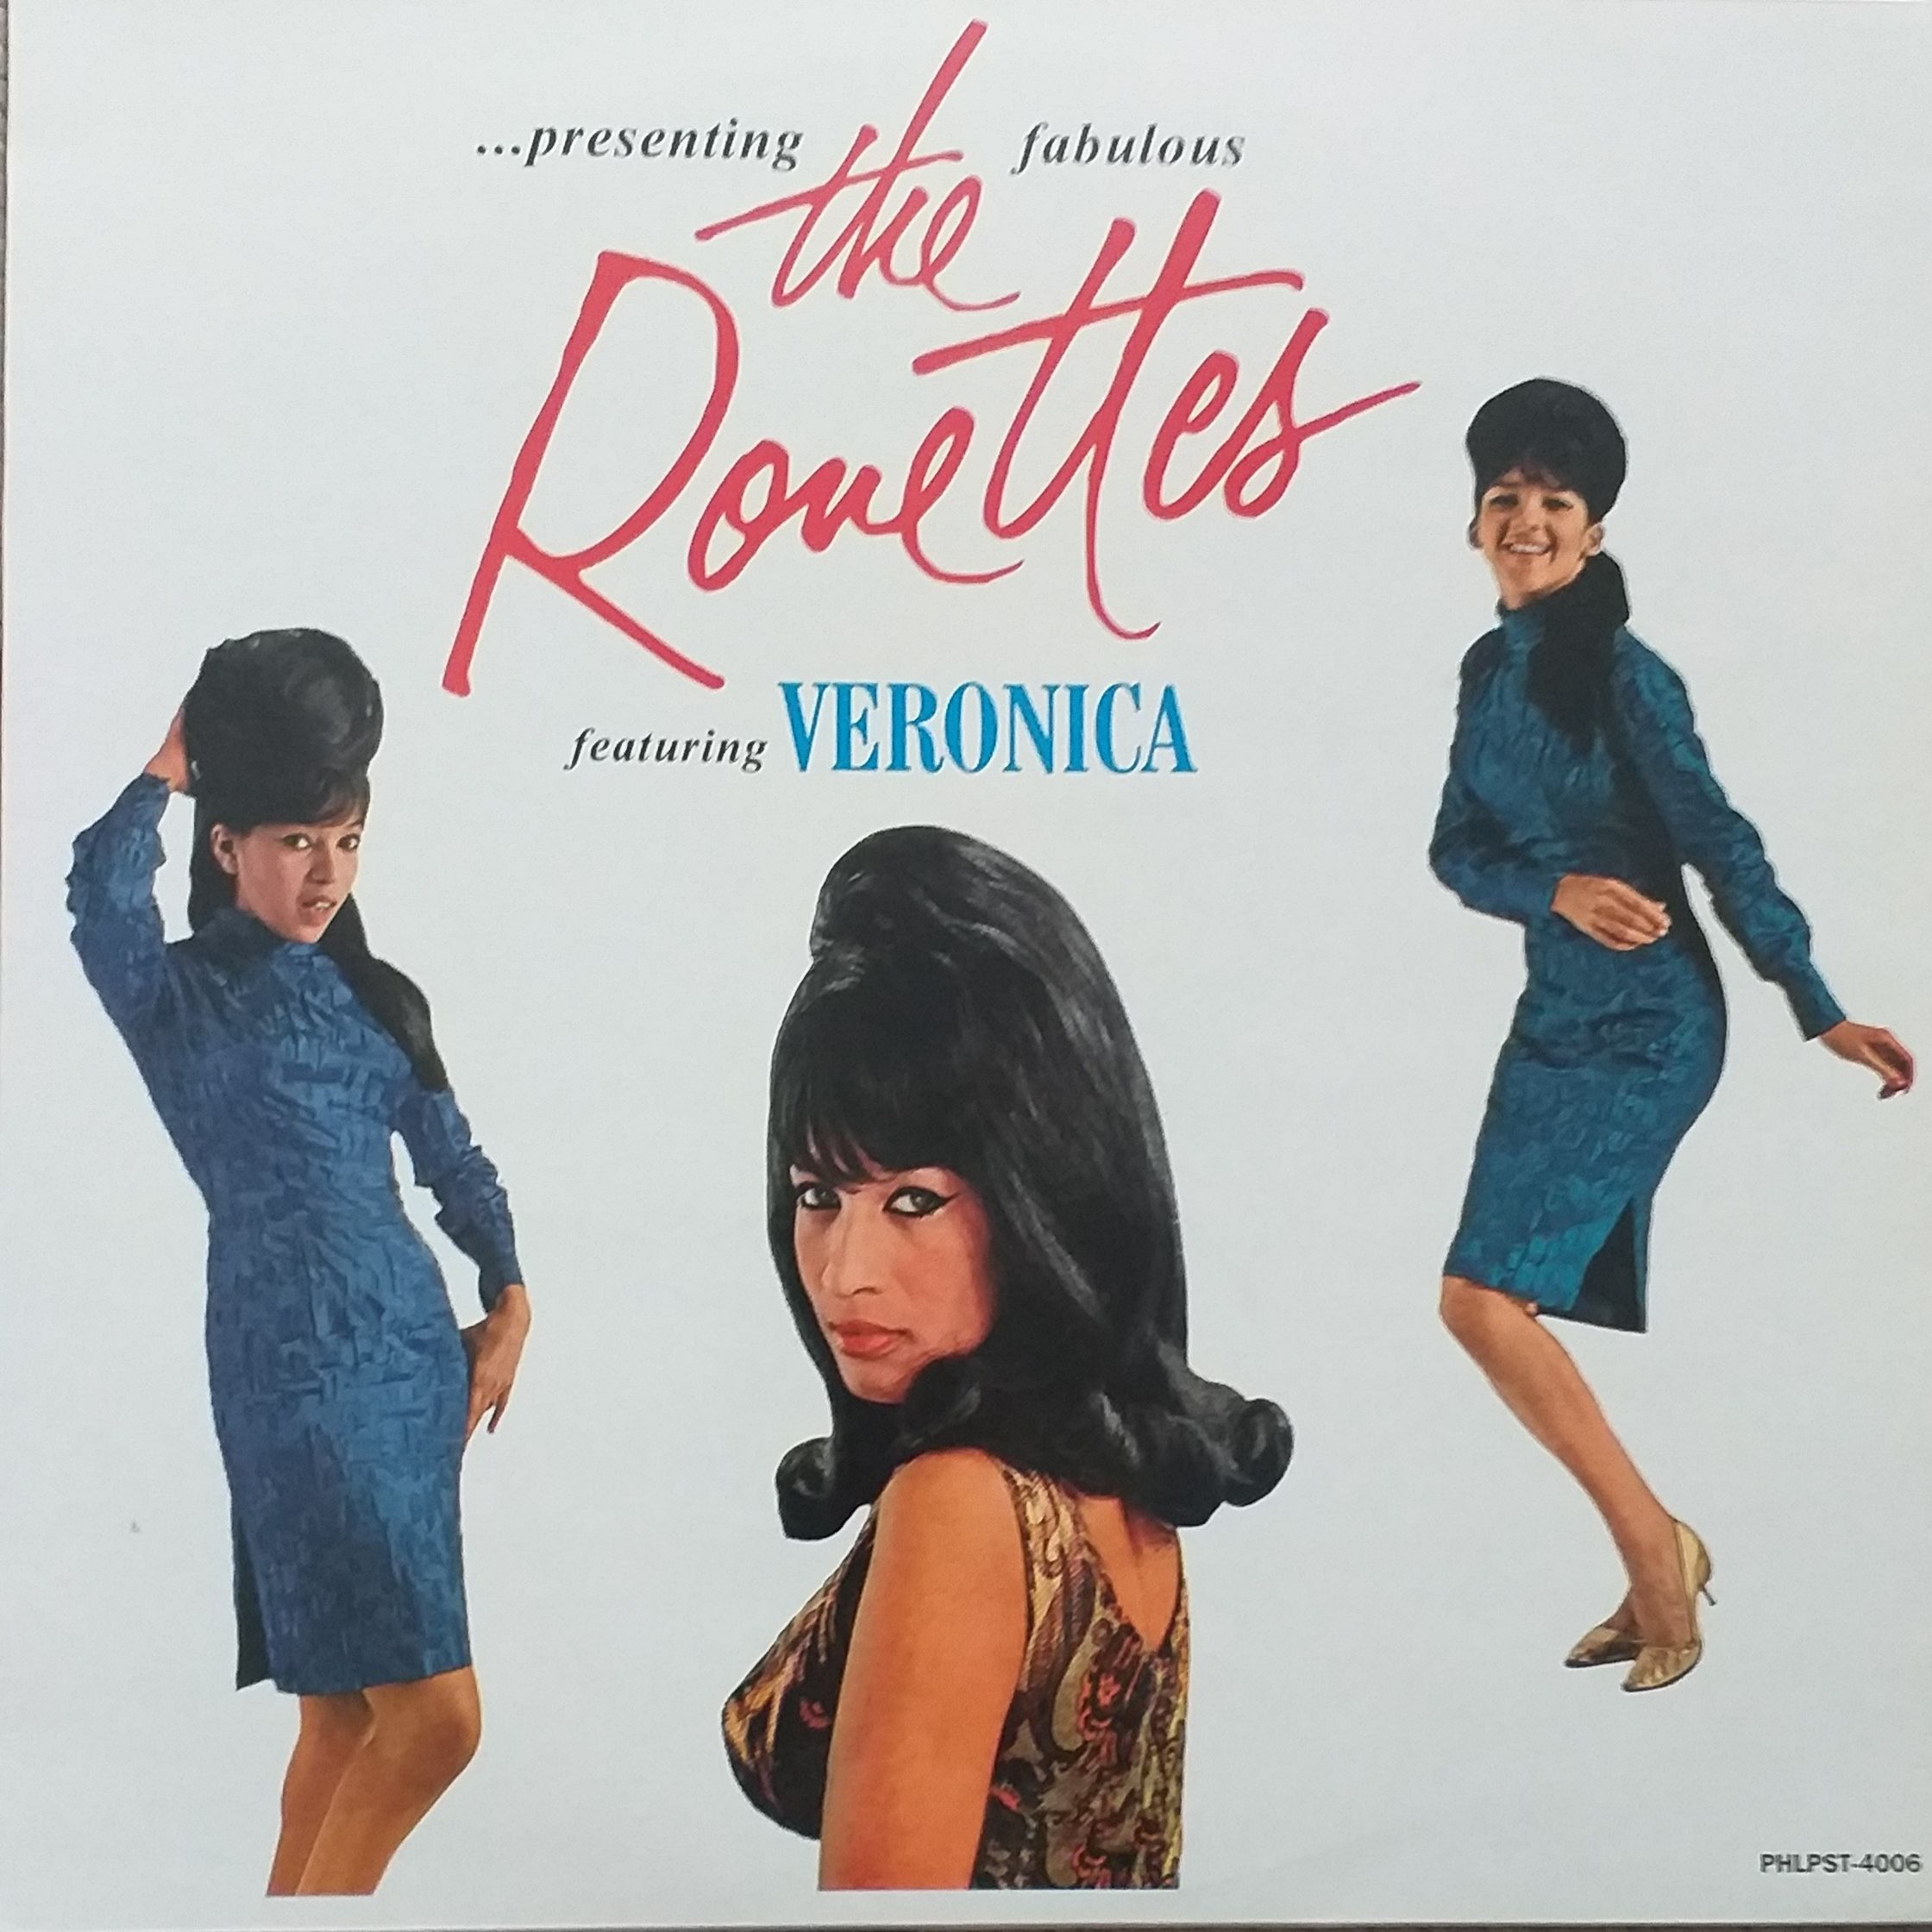 The ronettes Presenting the fabulous... LP undefined